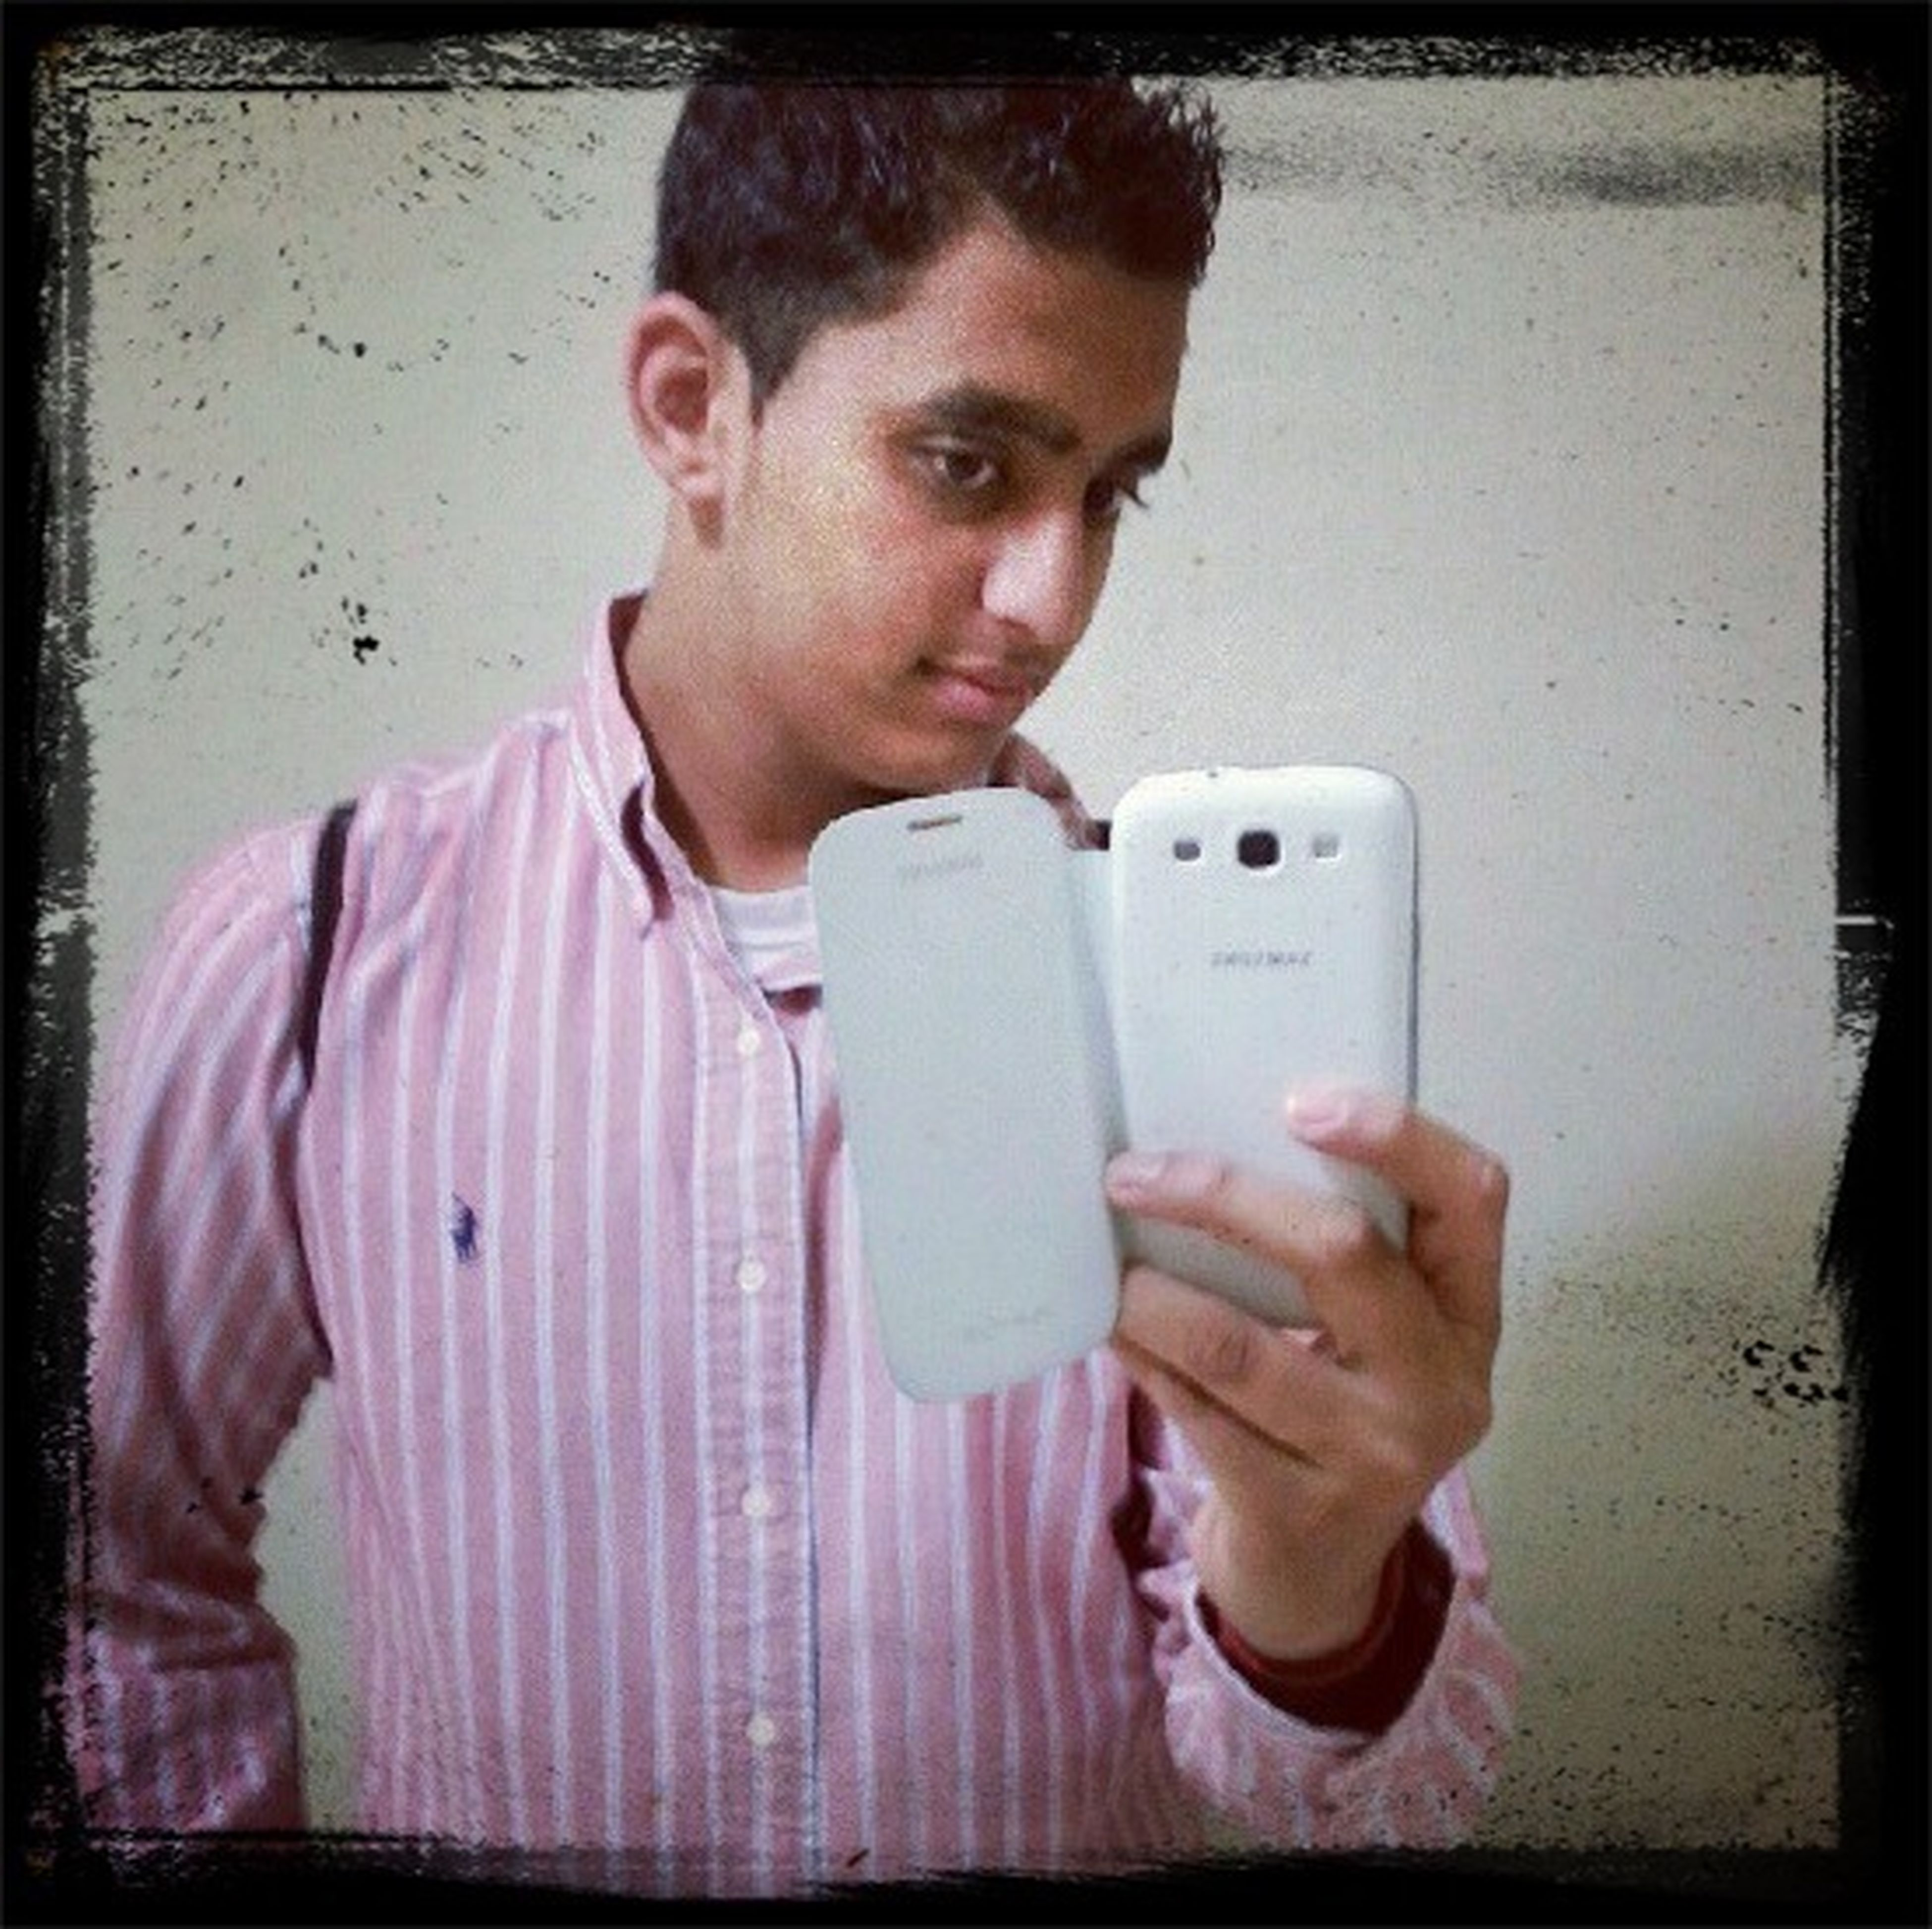 indoors, person, holding, transfer print, lifestyles, front view, casual clothing, wireless technology, leisure activity, young men, auto post production filter, childhood, communication, waist up, technology, food and drink, boys, elementary age